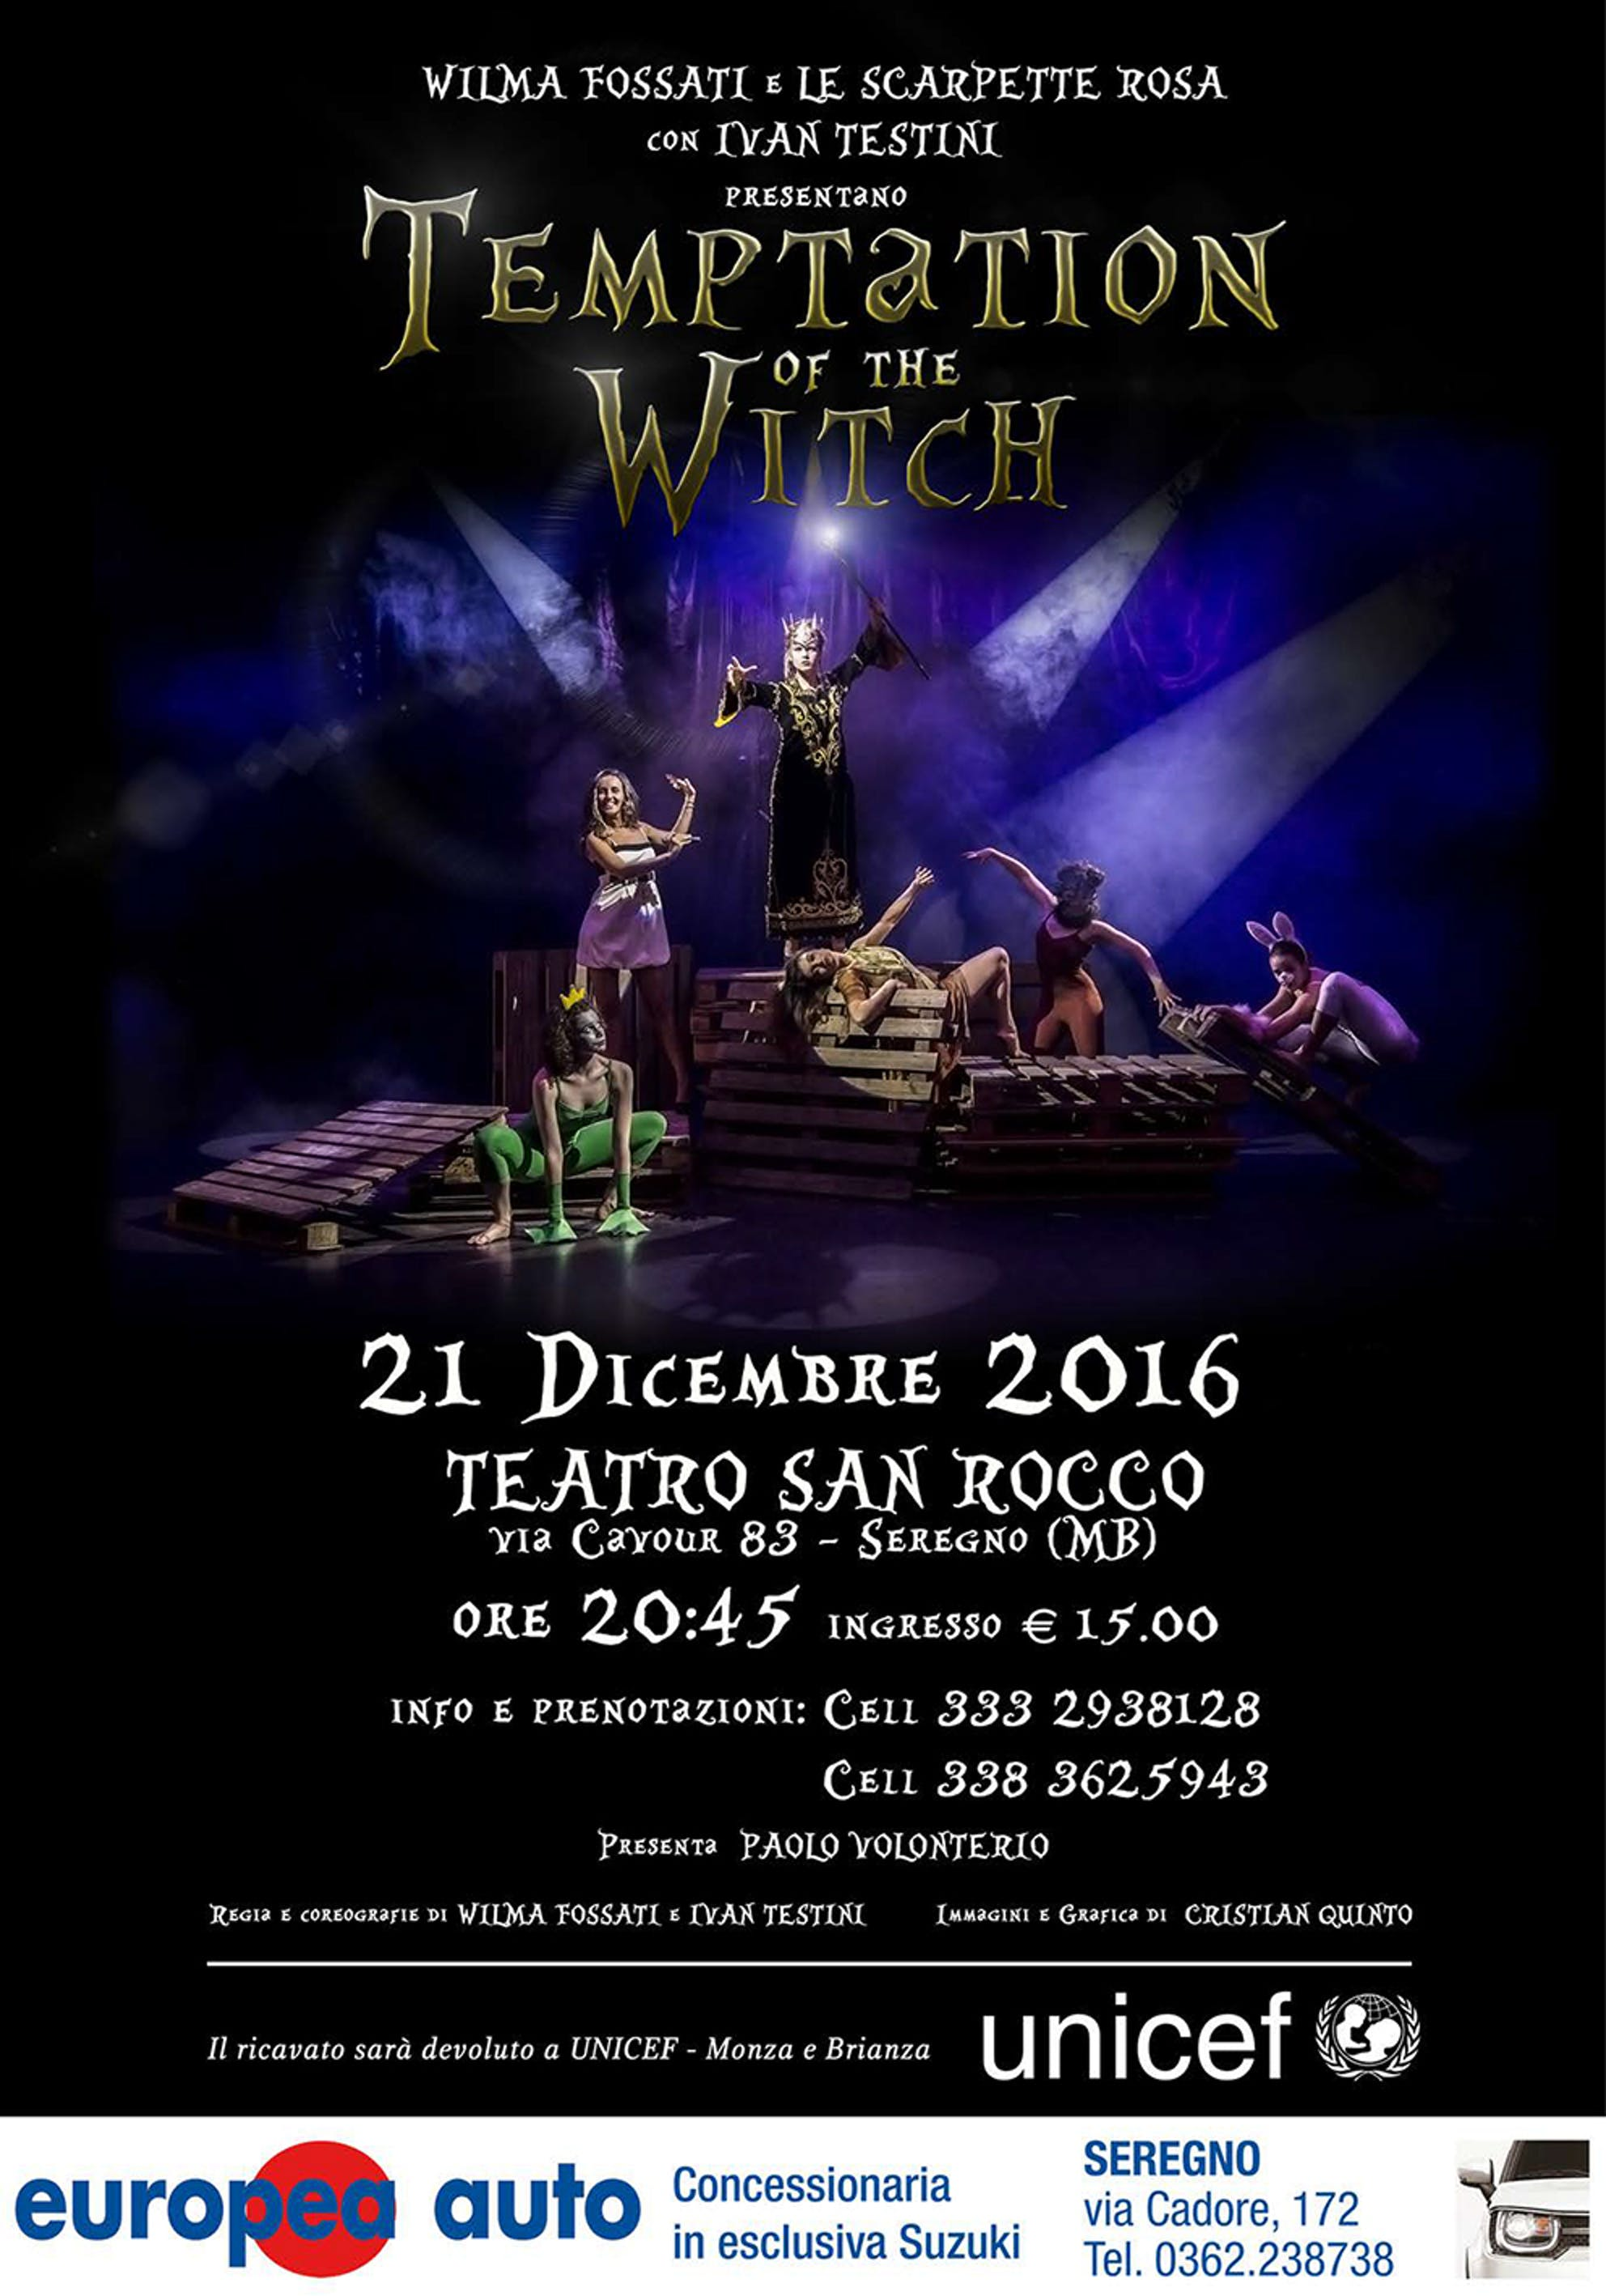 Temptation of the witch 2016